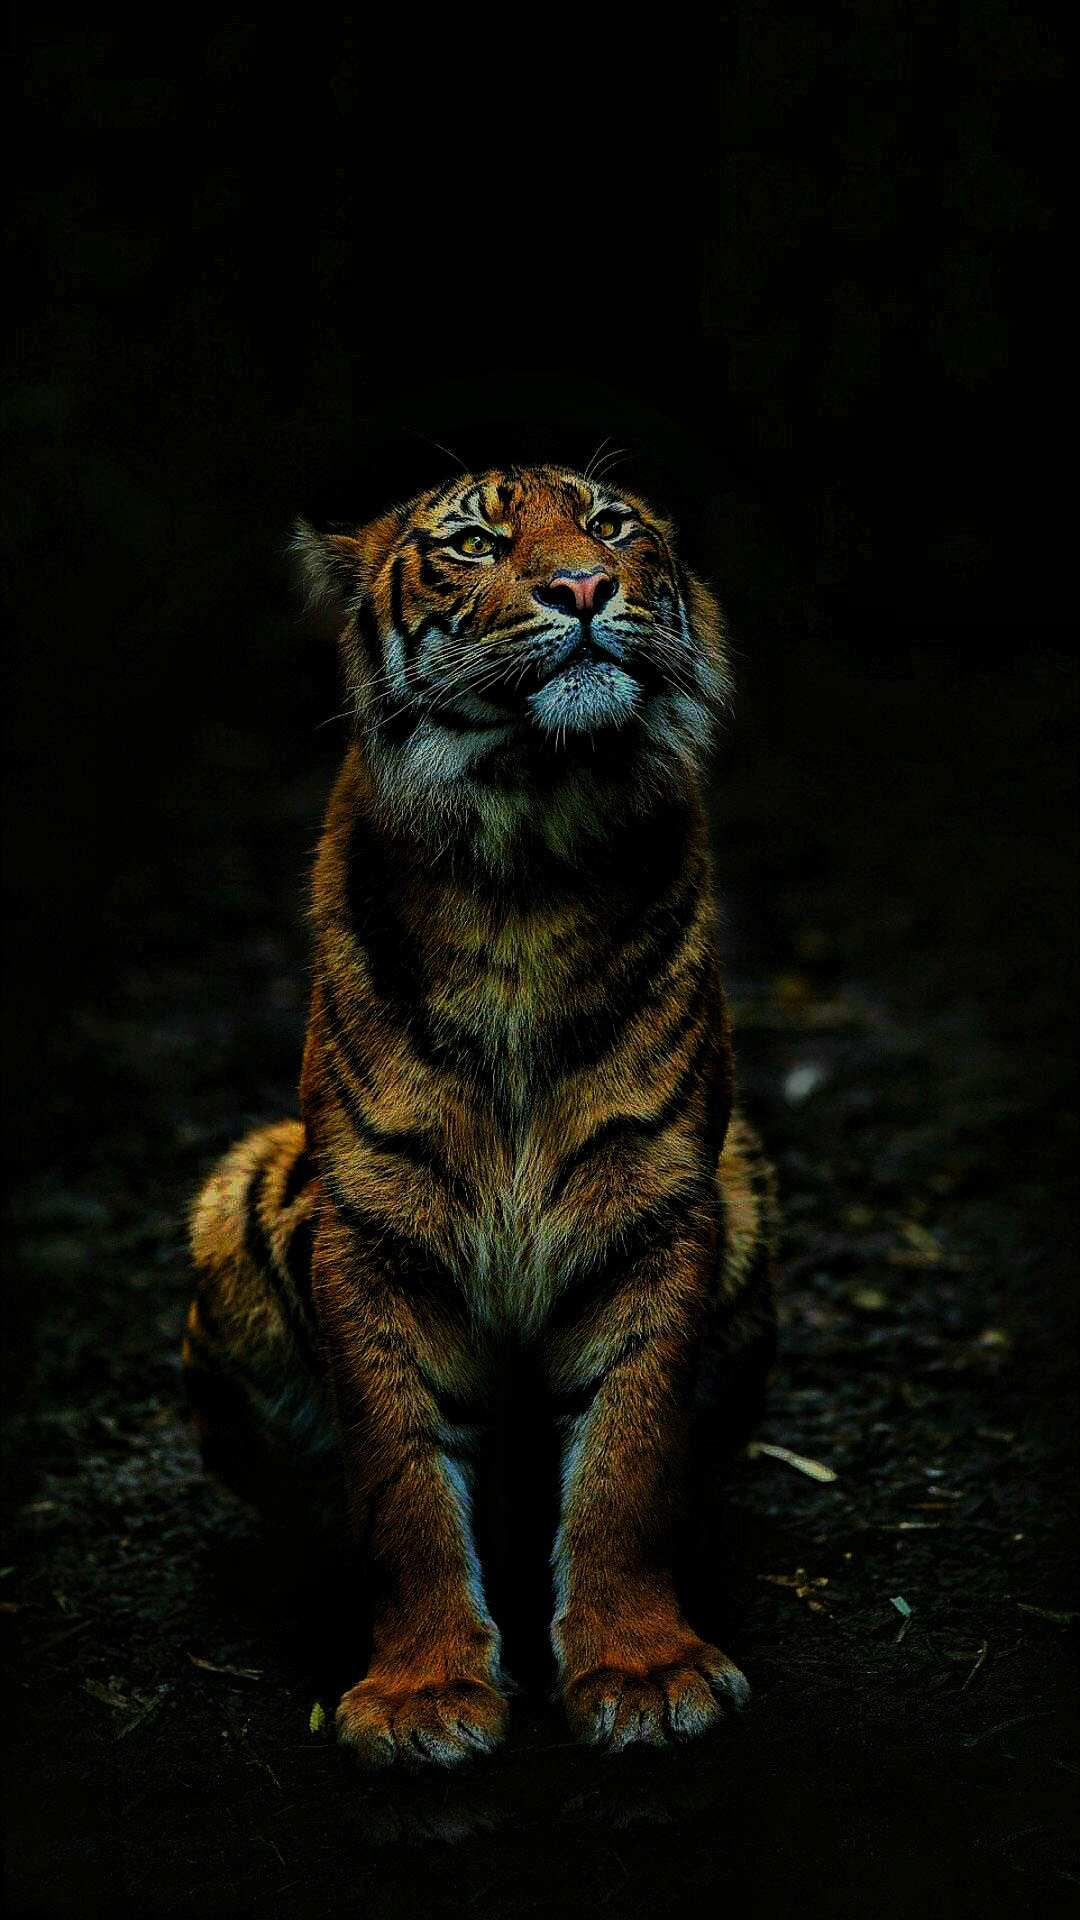 Tiger In Dark Iphone Wallpaper Tiger Pictures Endangered